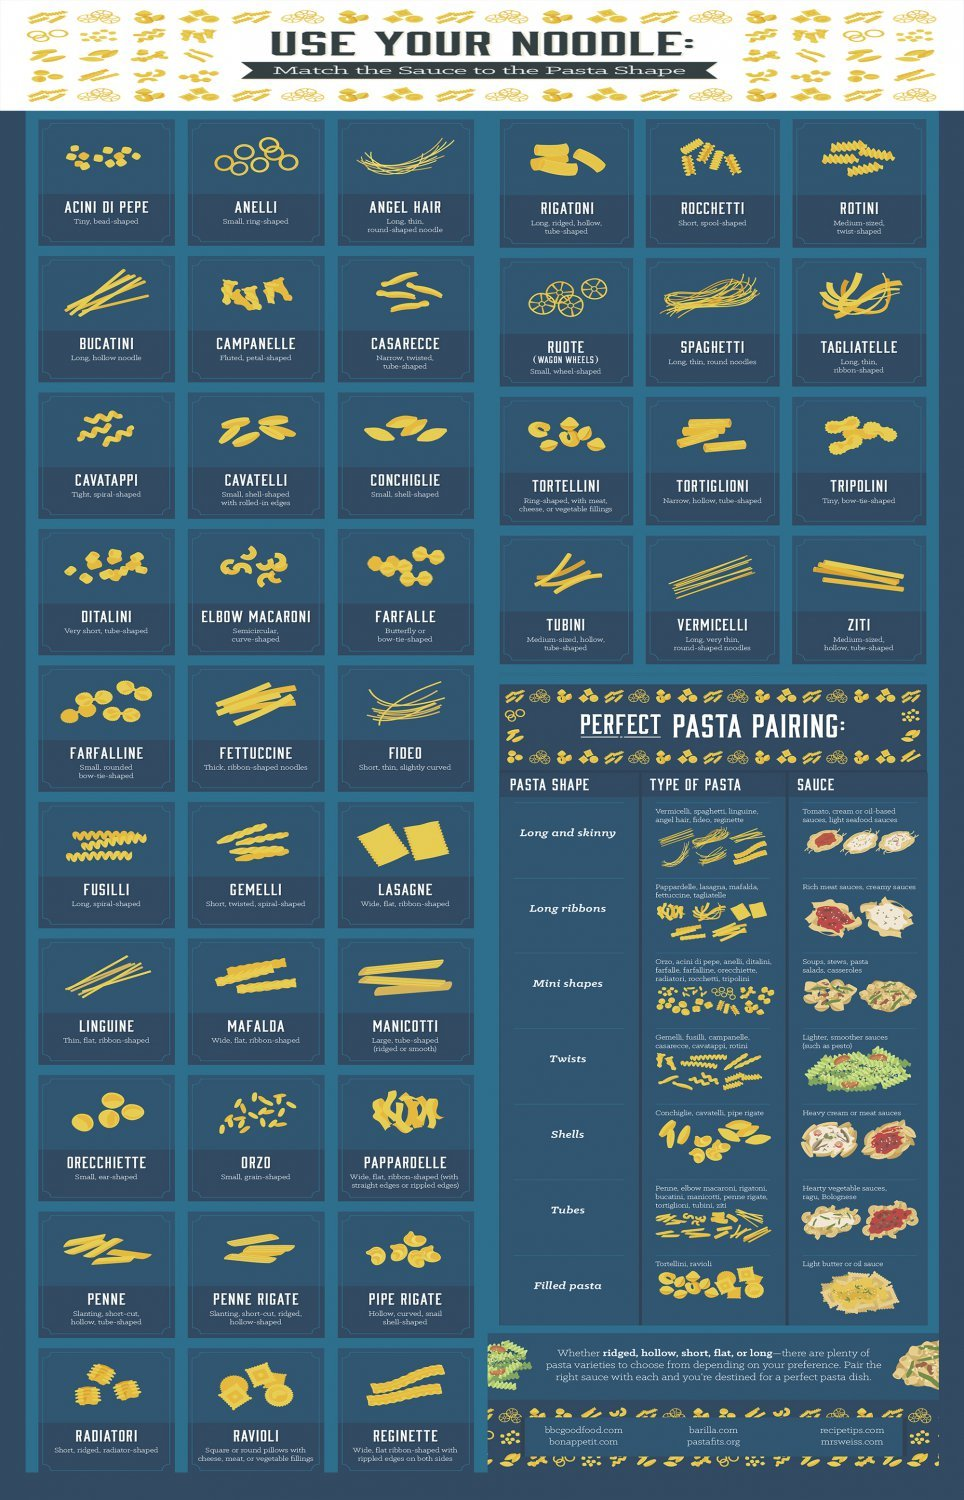 Use your noodle Pasta Shapes Chart  18x28 inches Poster Print